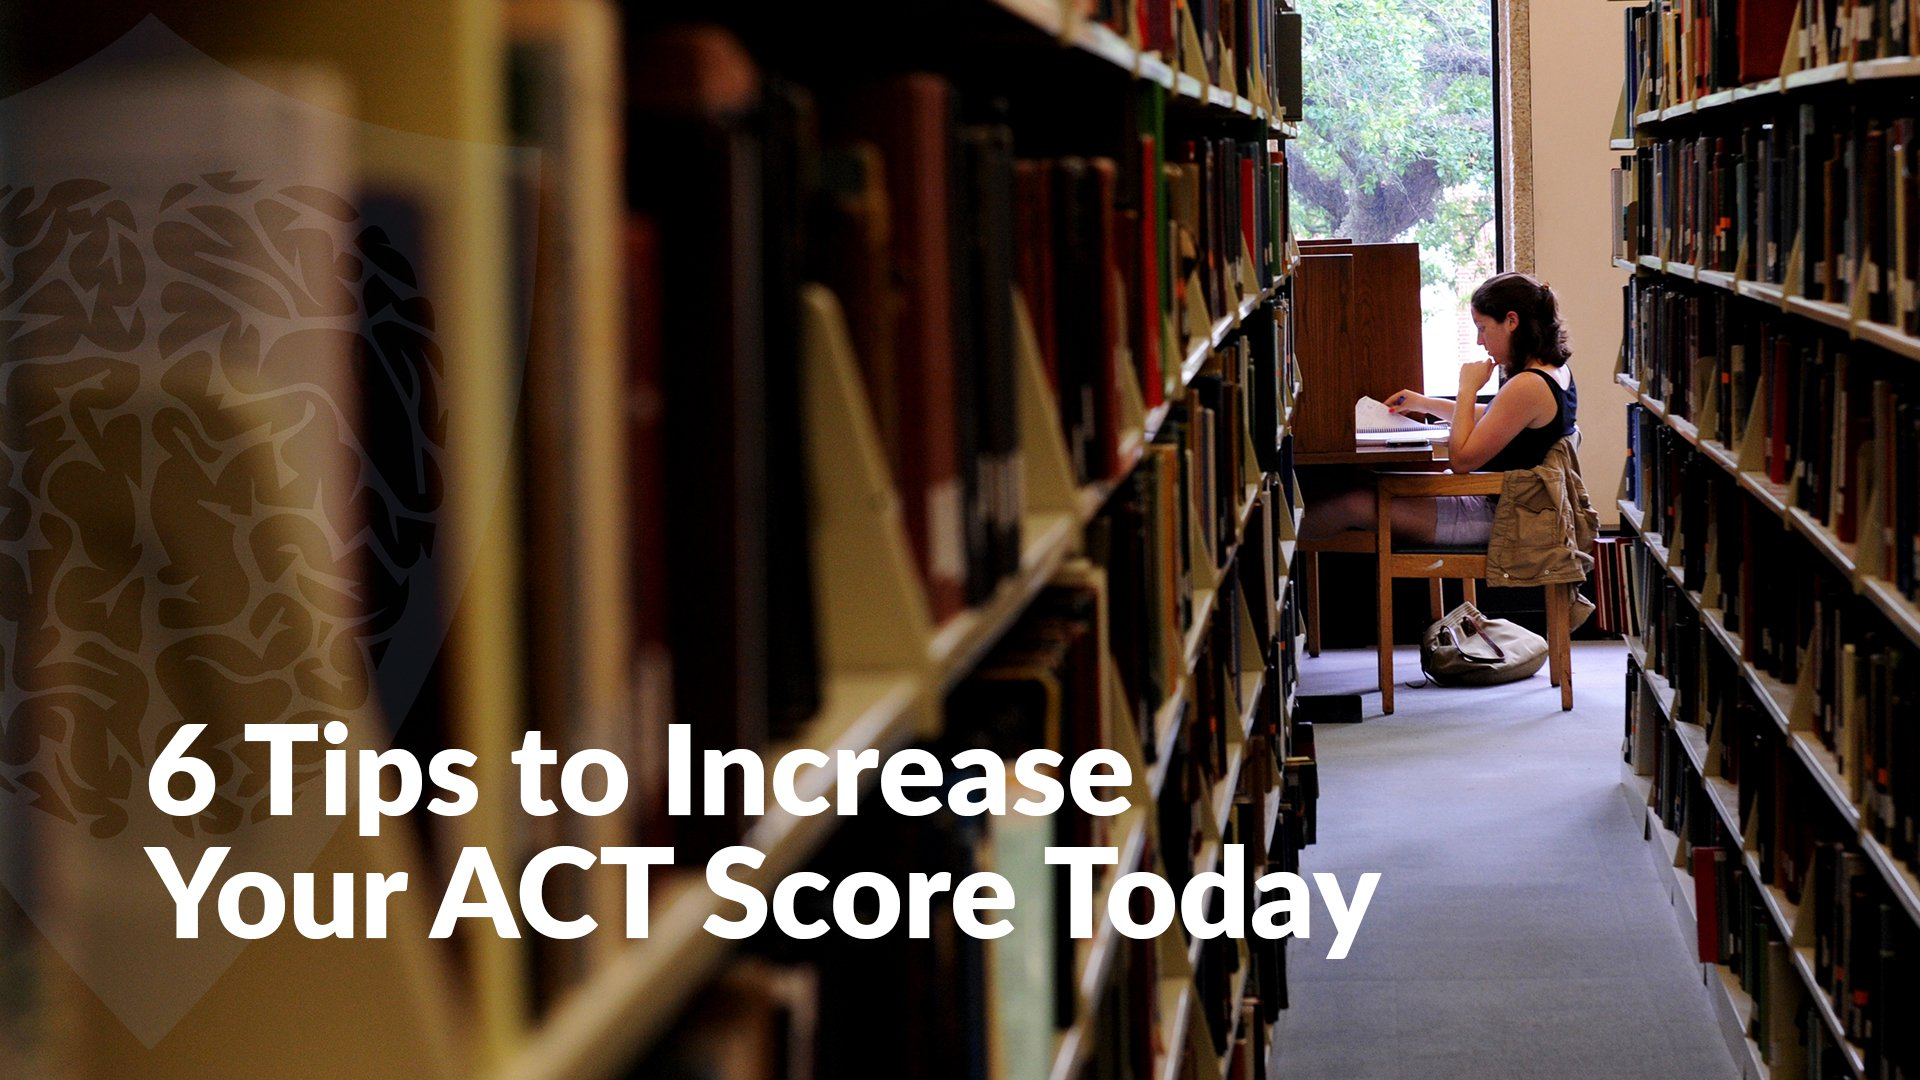 6 Tips to Increase Your ACT Score Today https://t.co/OHWD2Ga0Fl by @inGeniusprep https://t.co/qycfzTsAra